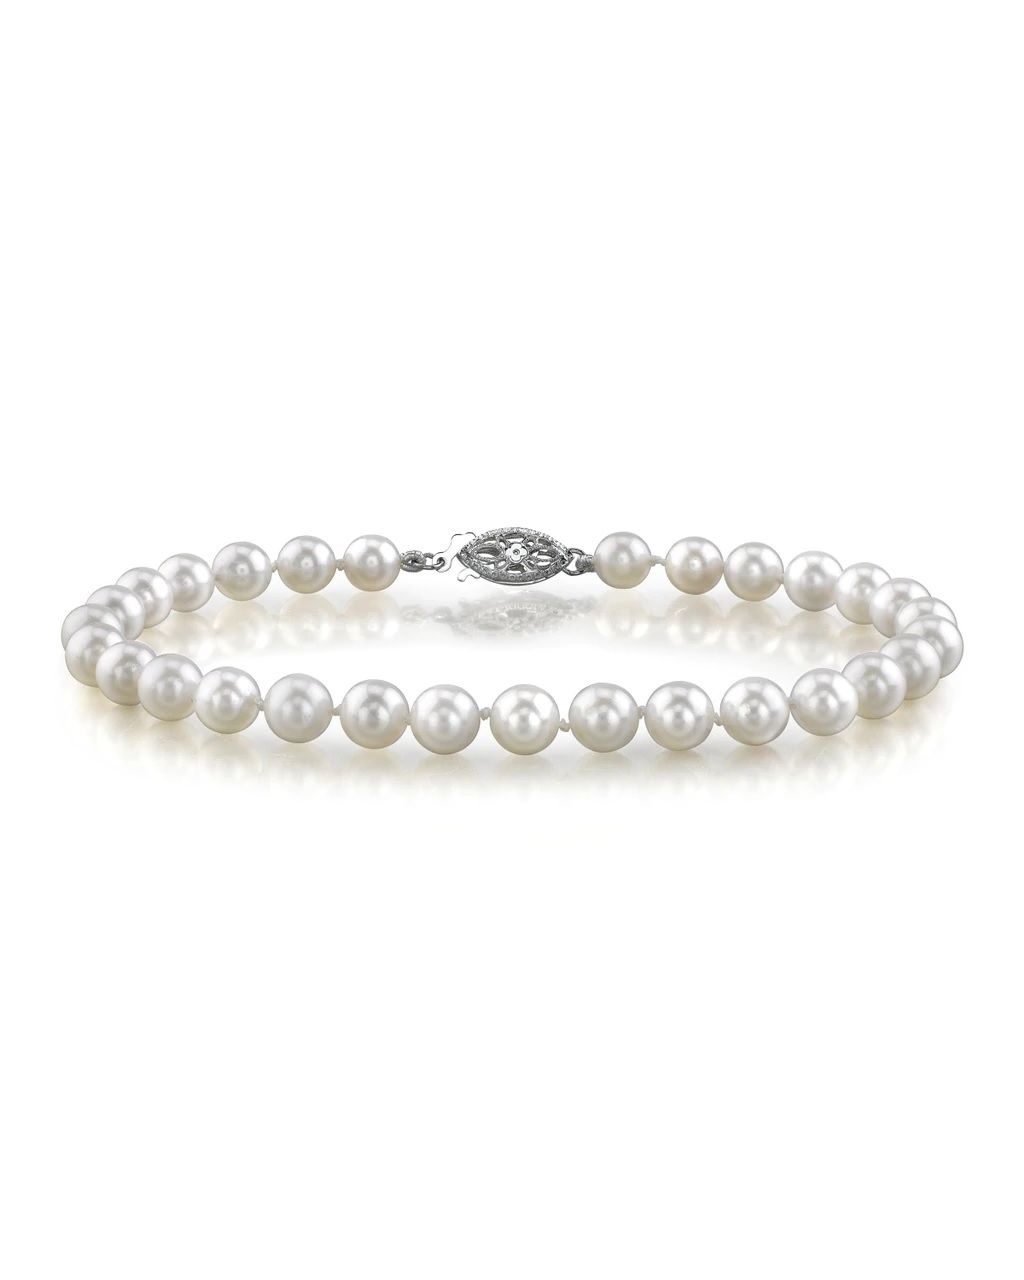 This elegant bracelet features 6.5-7.0mm Japanese Akoya pearls, handpicked for their luminous luster